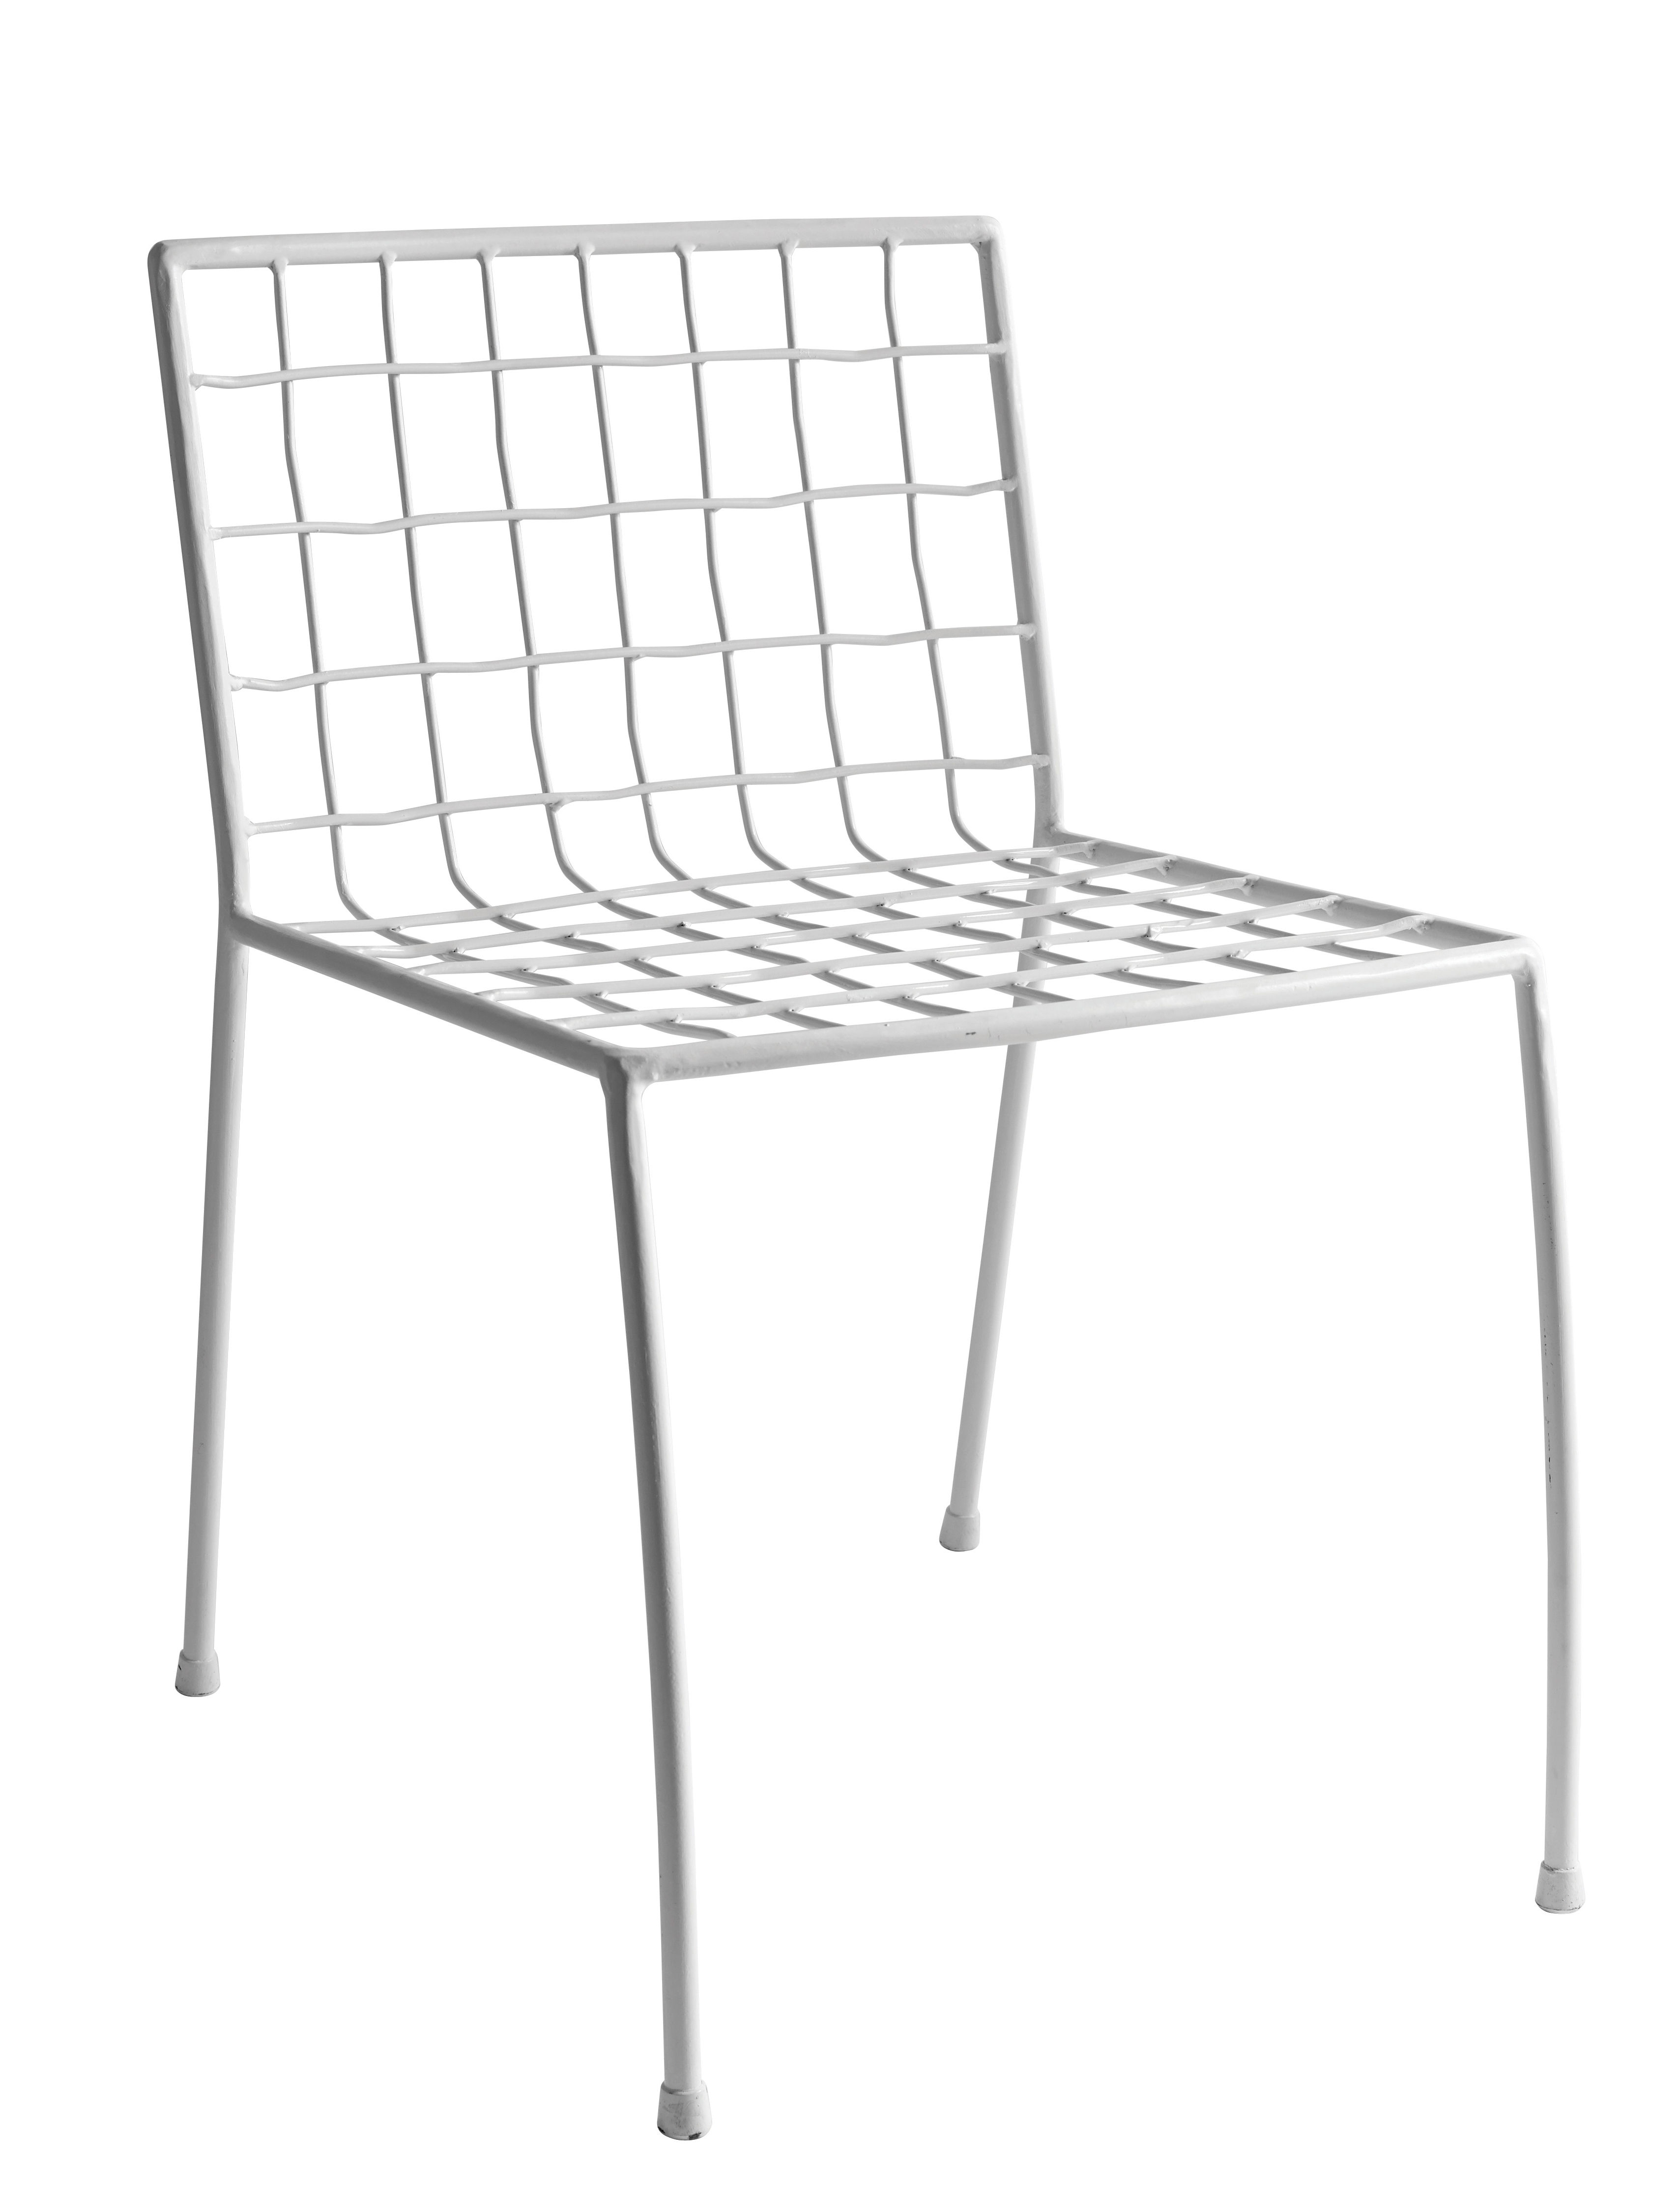 Furniture - Chairs - Commira Chair - Metal by Serax - White - Painted iron